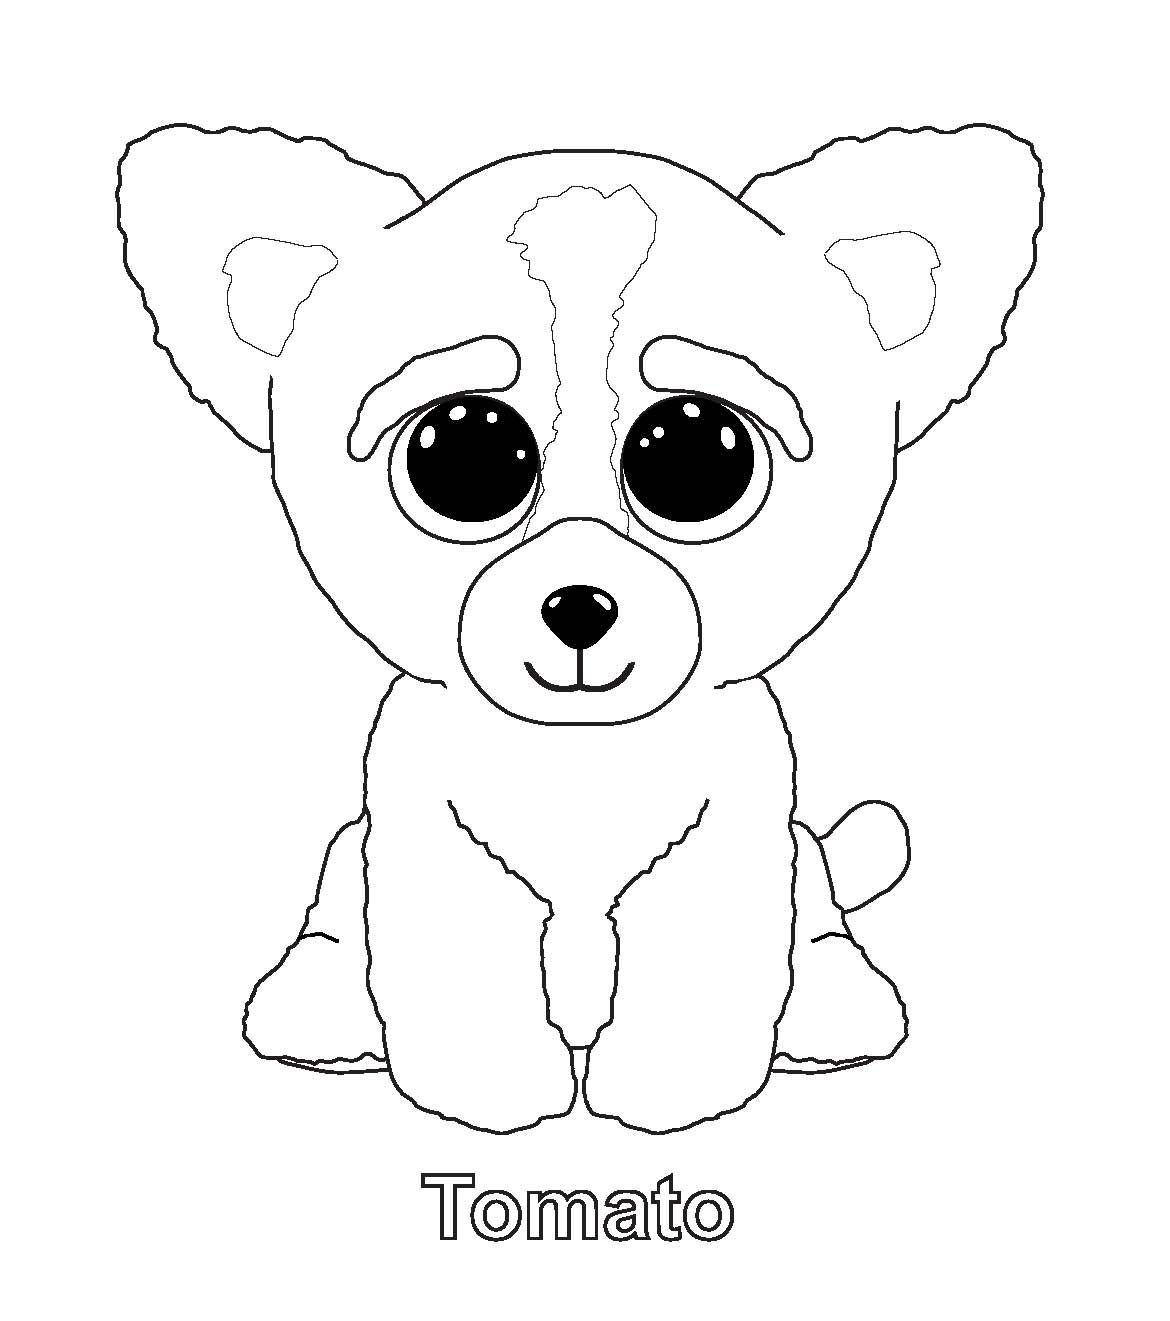 boo boo coloring pages - photo#22